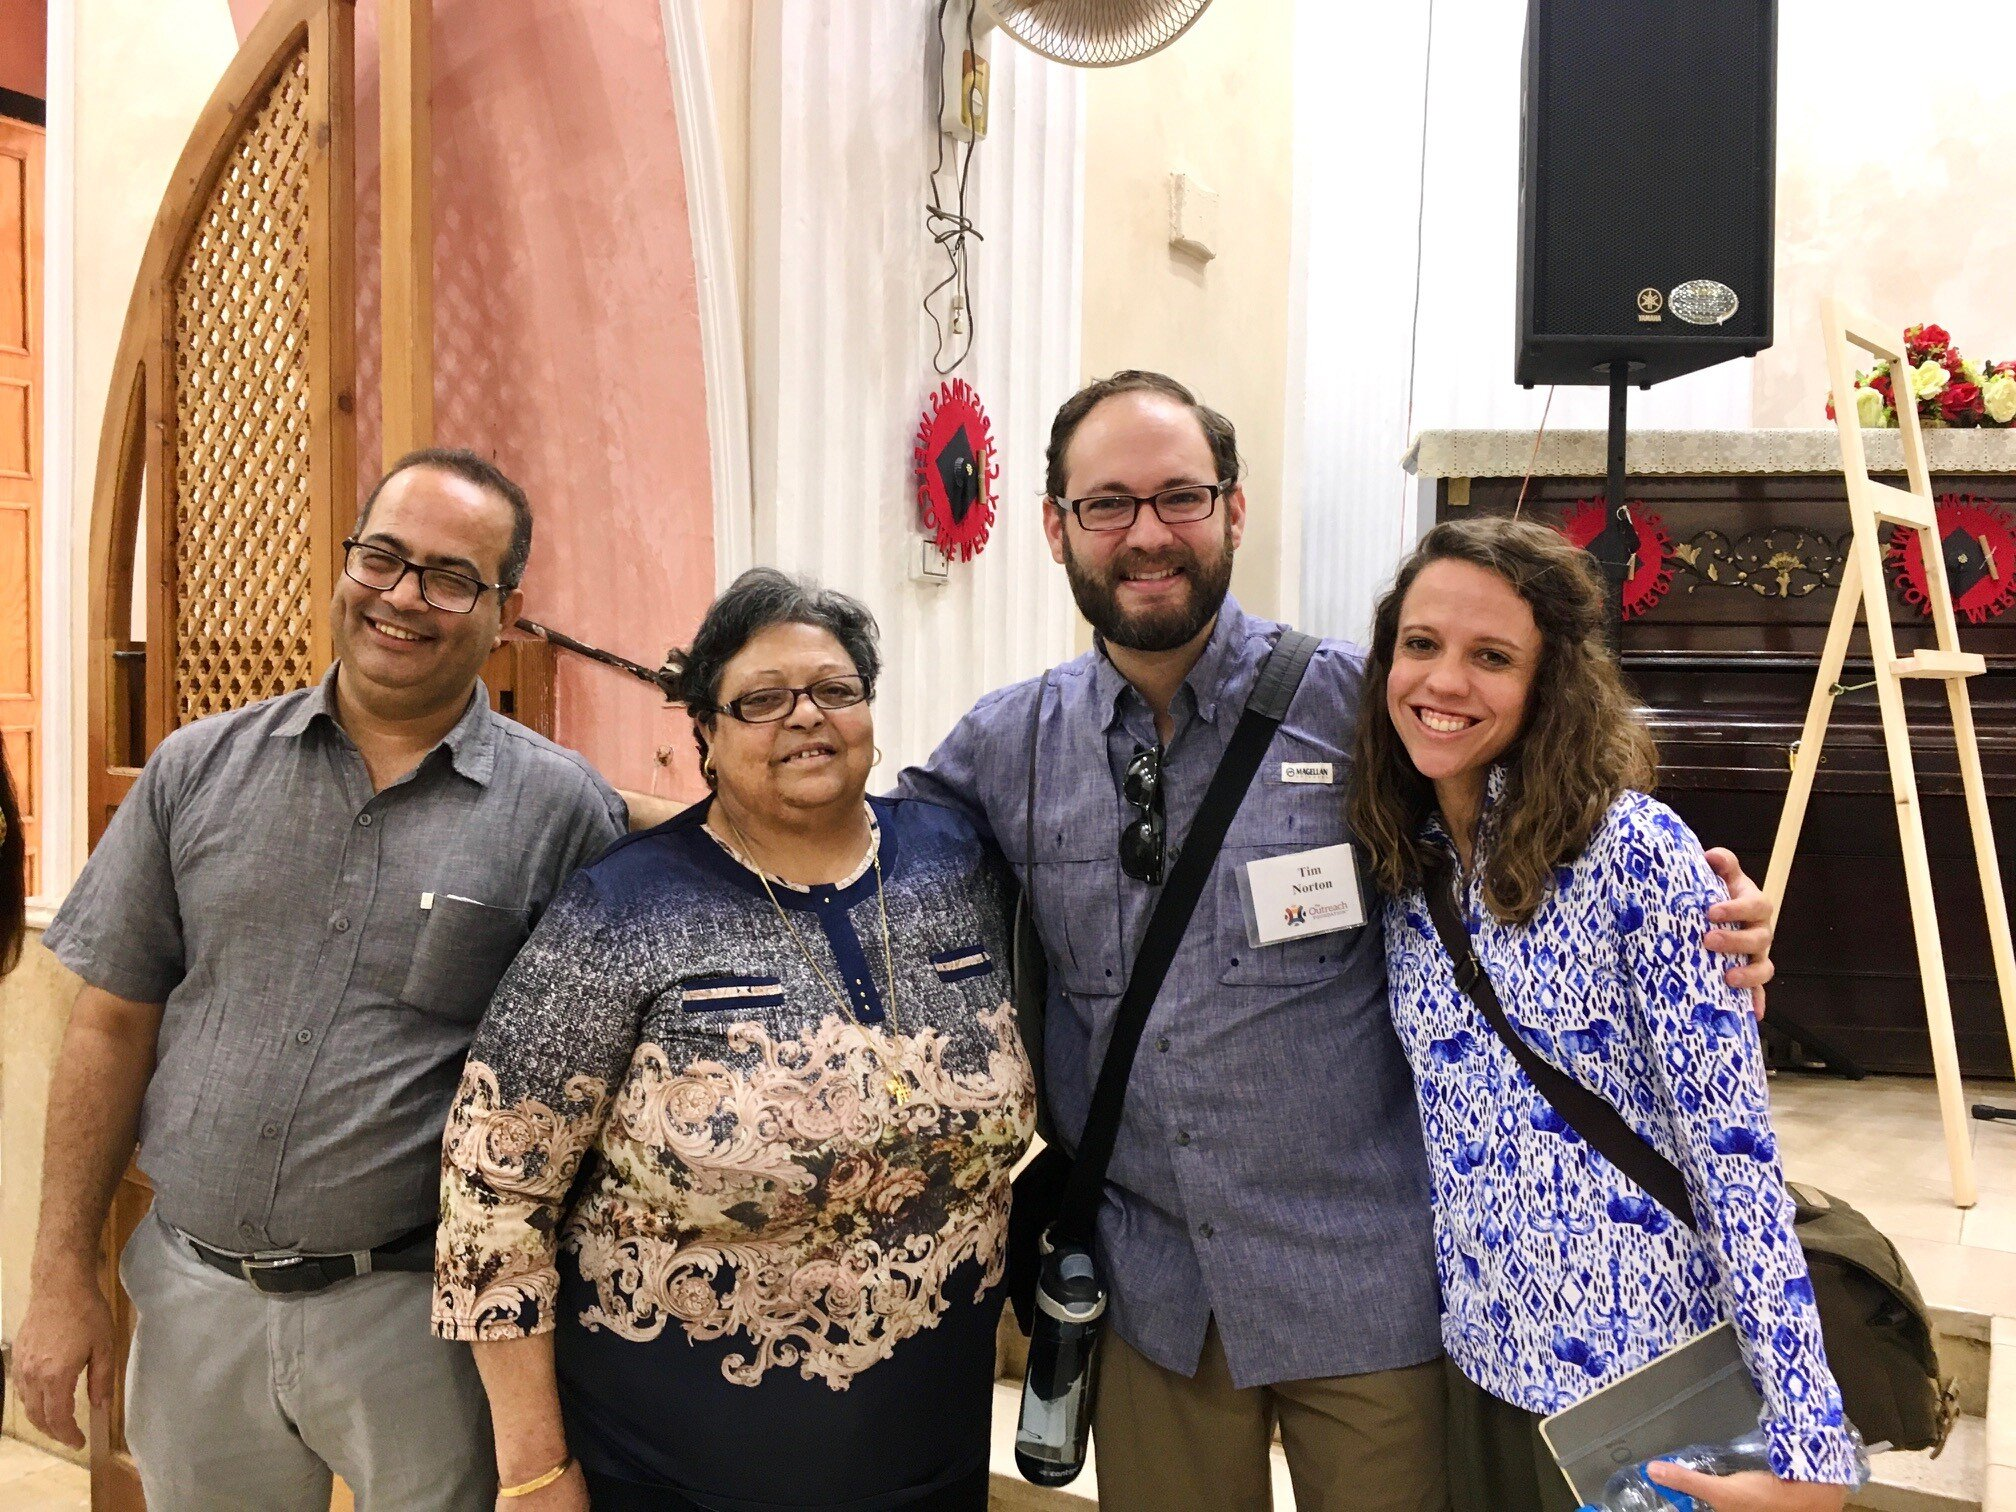 Our visit to the Synod of the Nile schools, located down the street from the Presbyterian Church of Luxor. Left to right: Rev. Mahrous Karam, the headmistress of the school, and Tim and Kendra Norton.